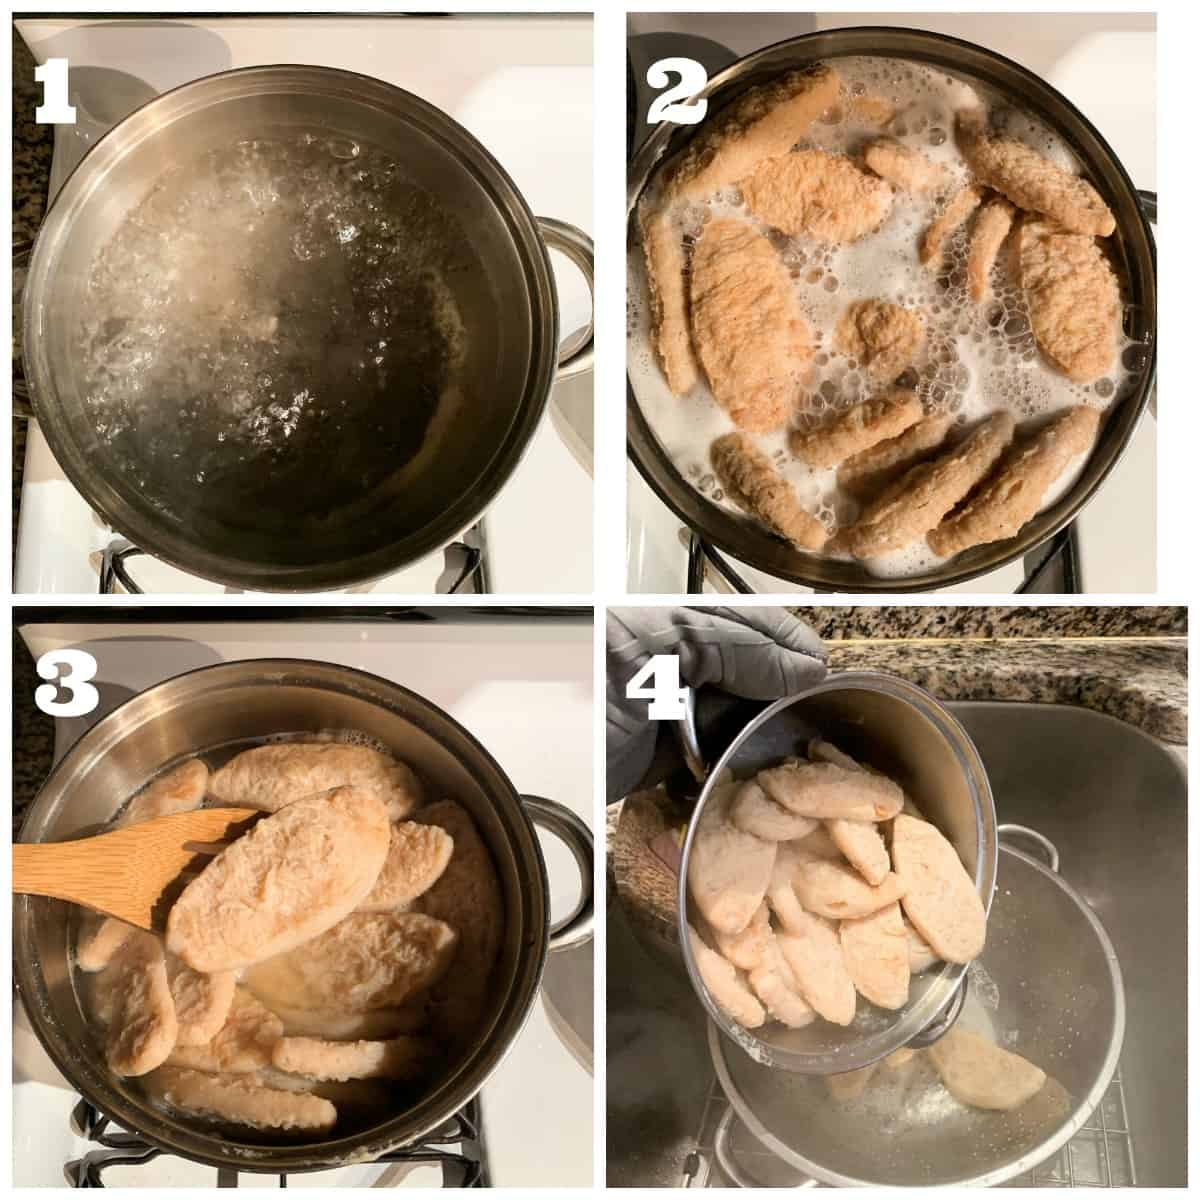 4 photo collage showing steps to rehydrate and boil vegan chicken filets.